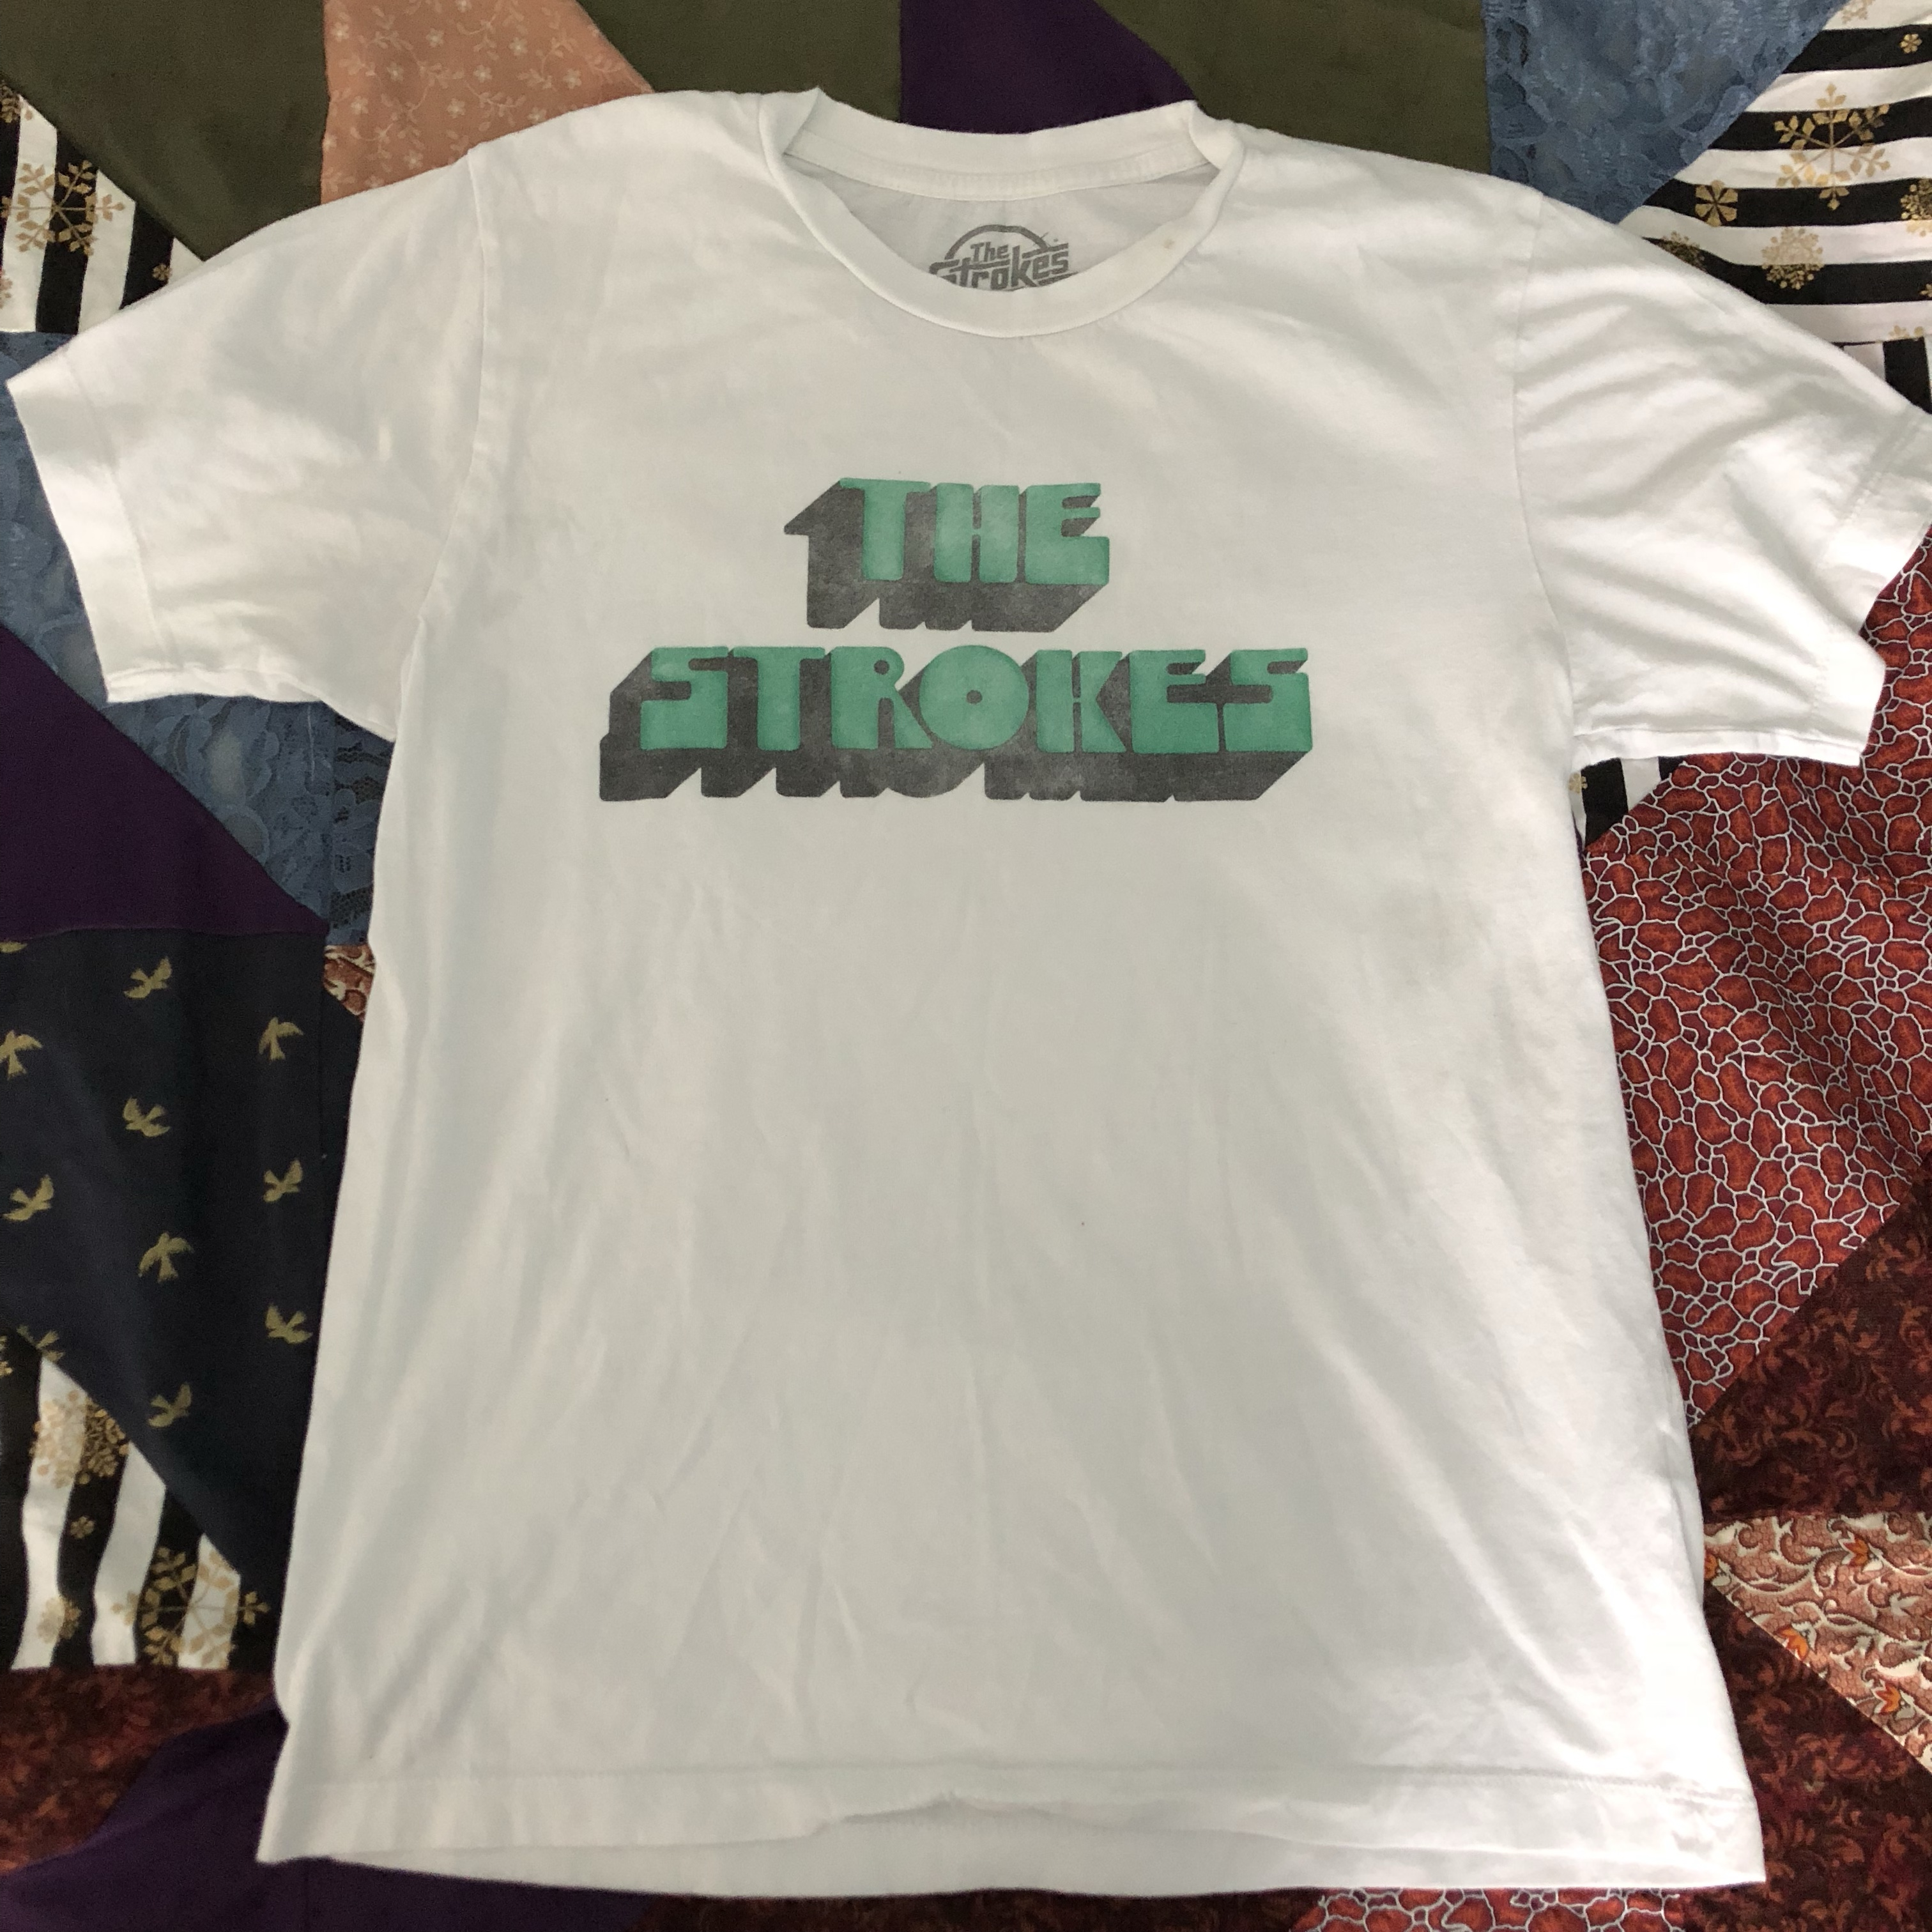 11ee46cdbeb5 hannahshick. Lewisville, United States. The Strokes official merch t shirt. Unisex  size ...